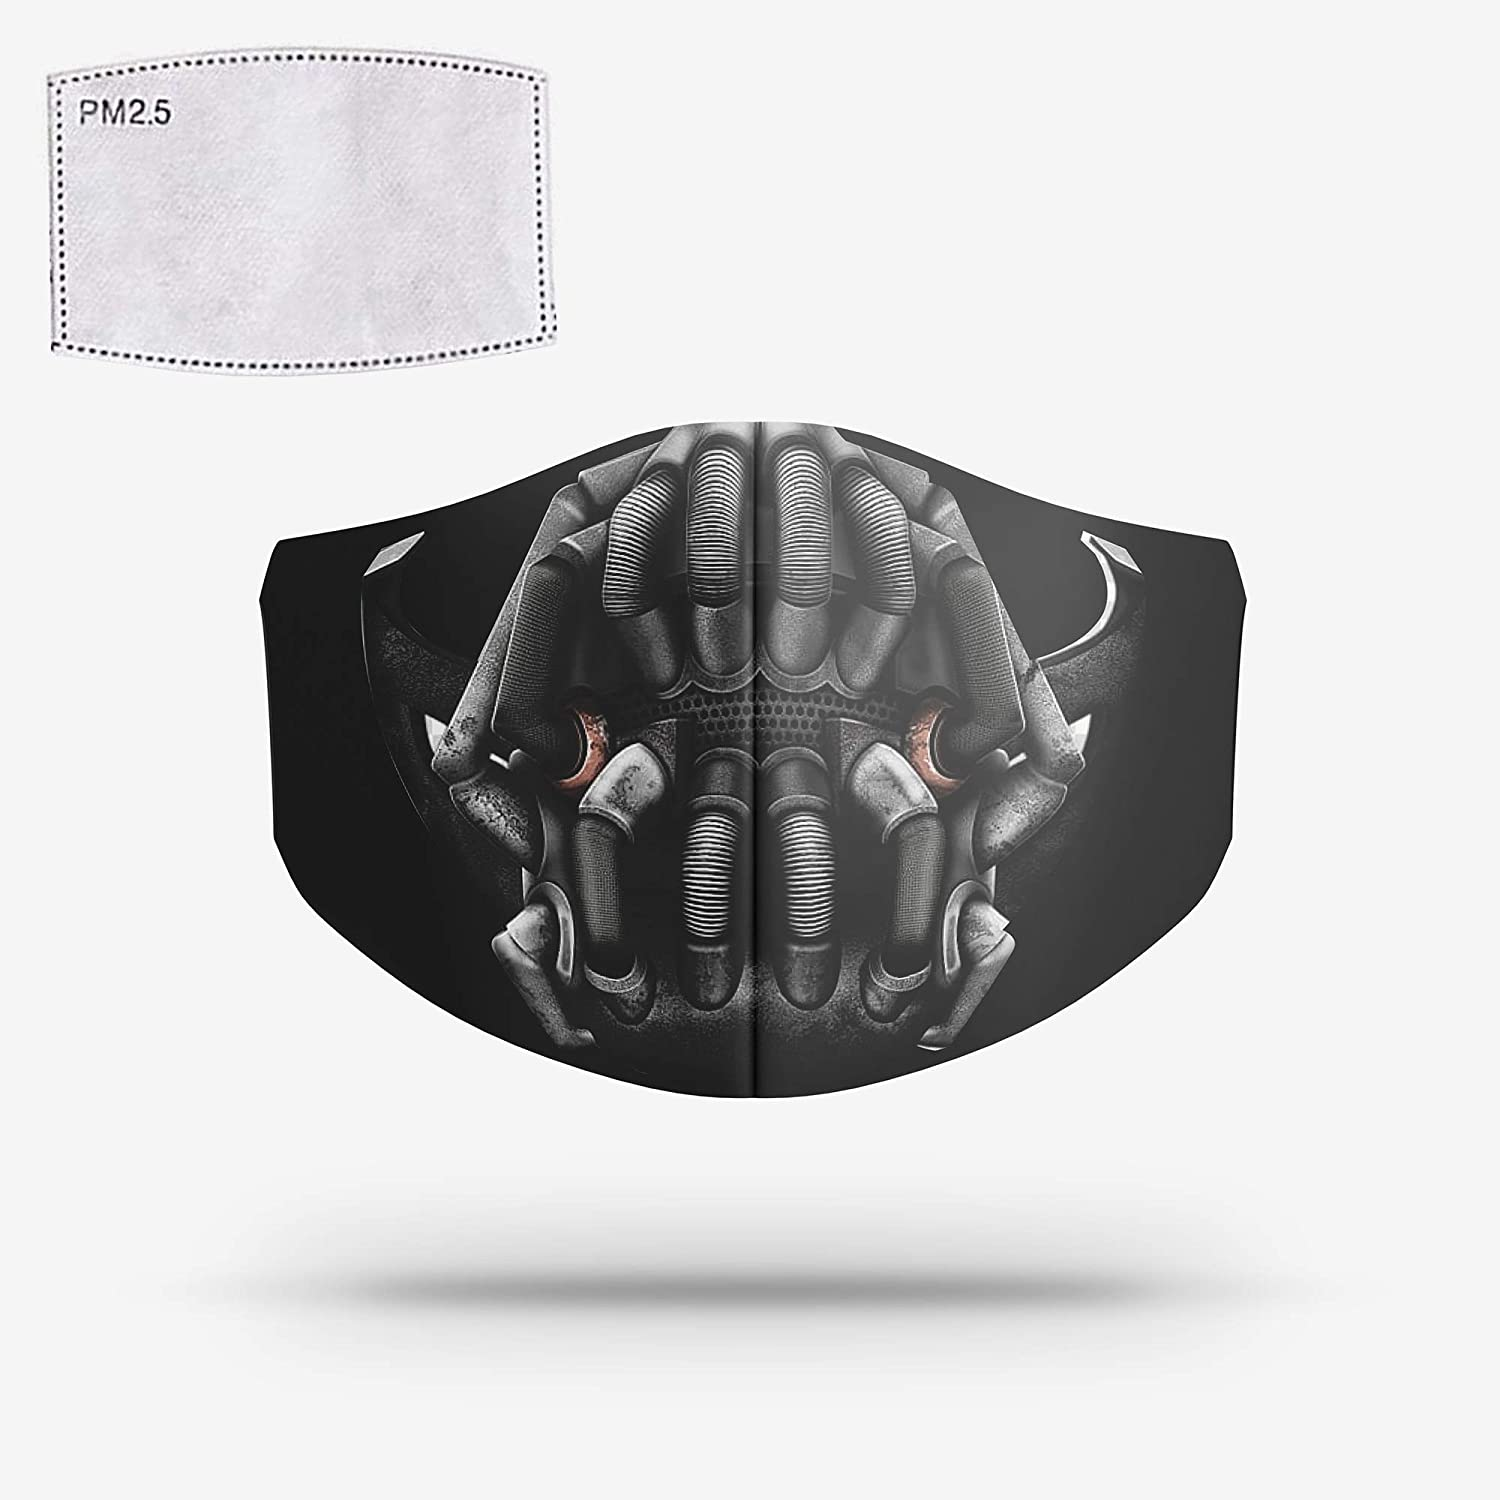 COOLINKO Designer Face Complete Free Shipping Covering with Free Shipping New Filt Activated Carbon PM2.5